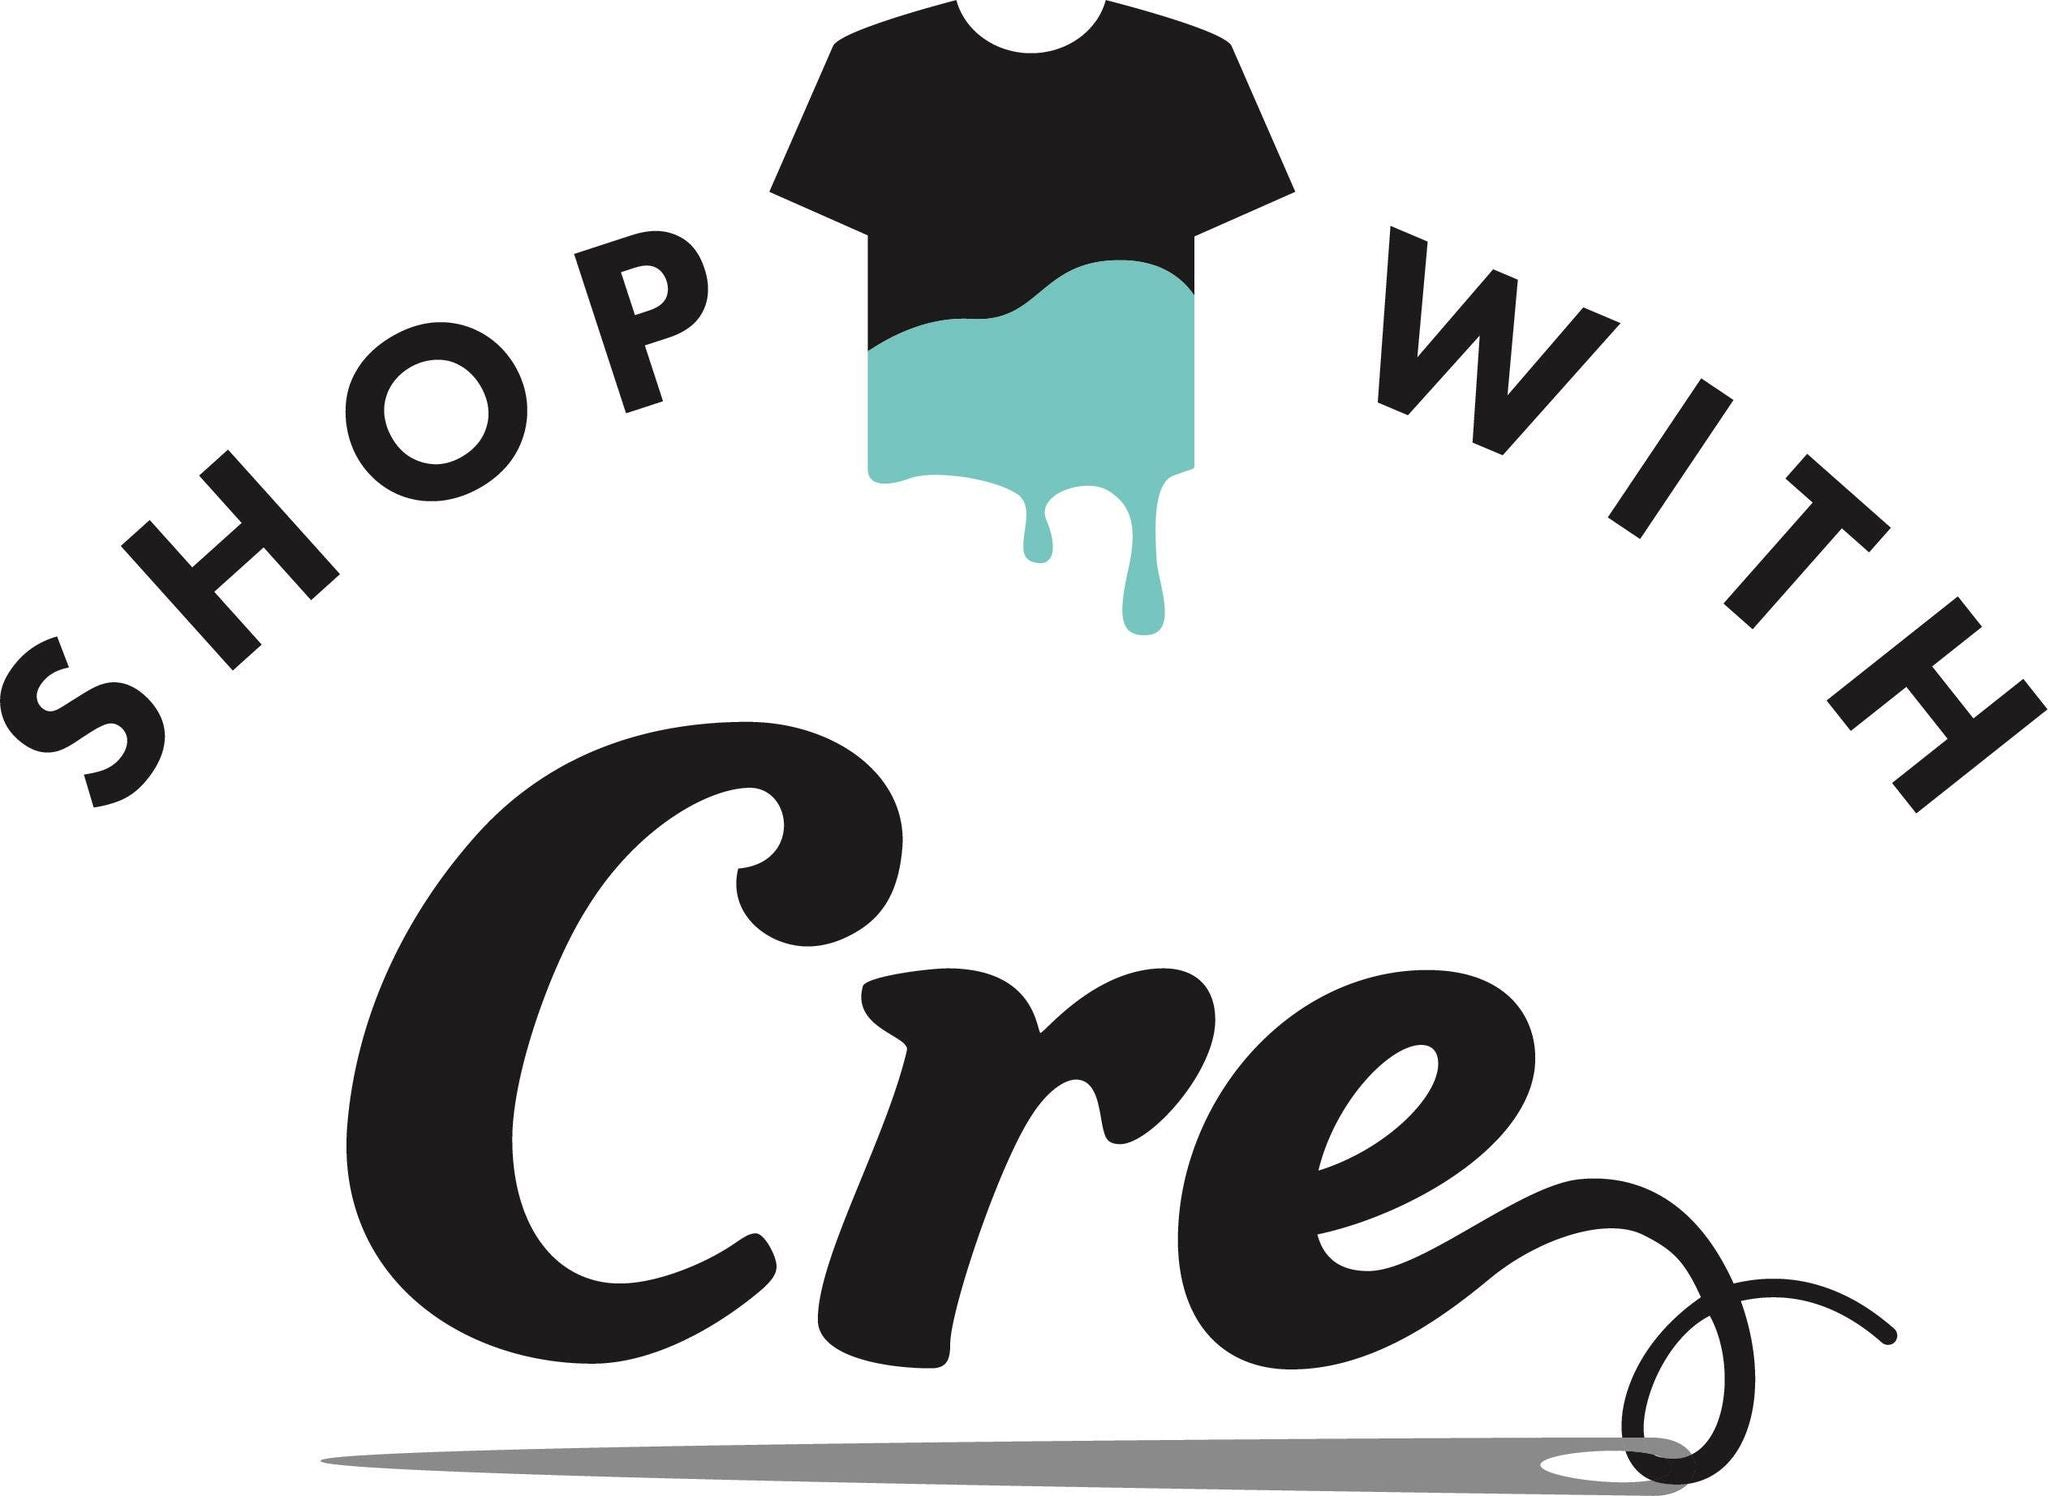 Shop With Cre